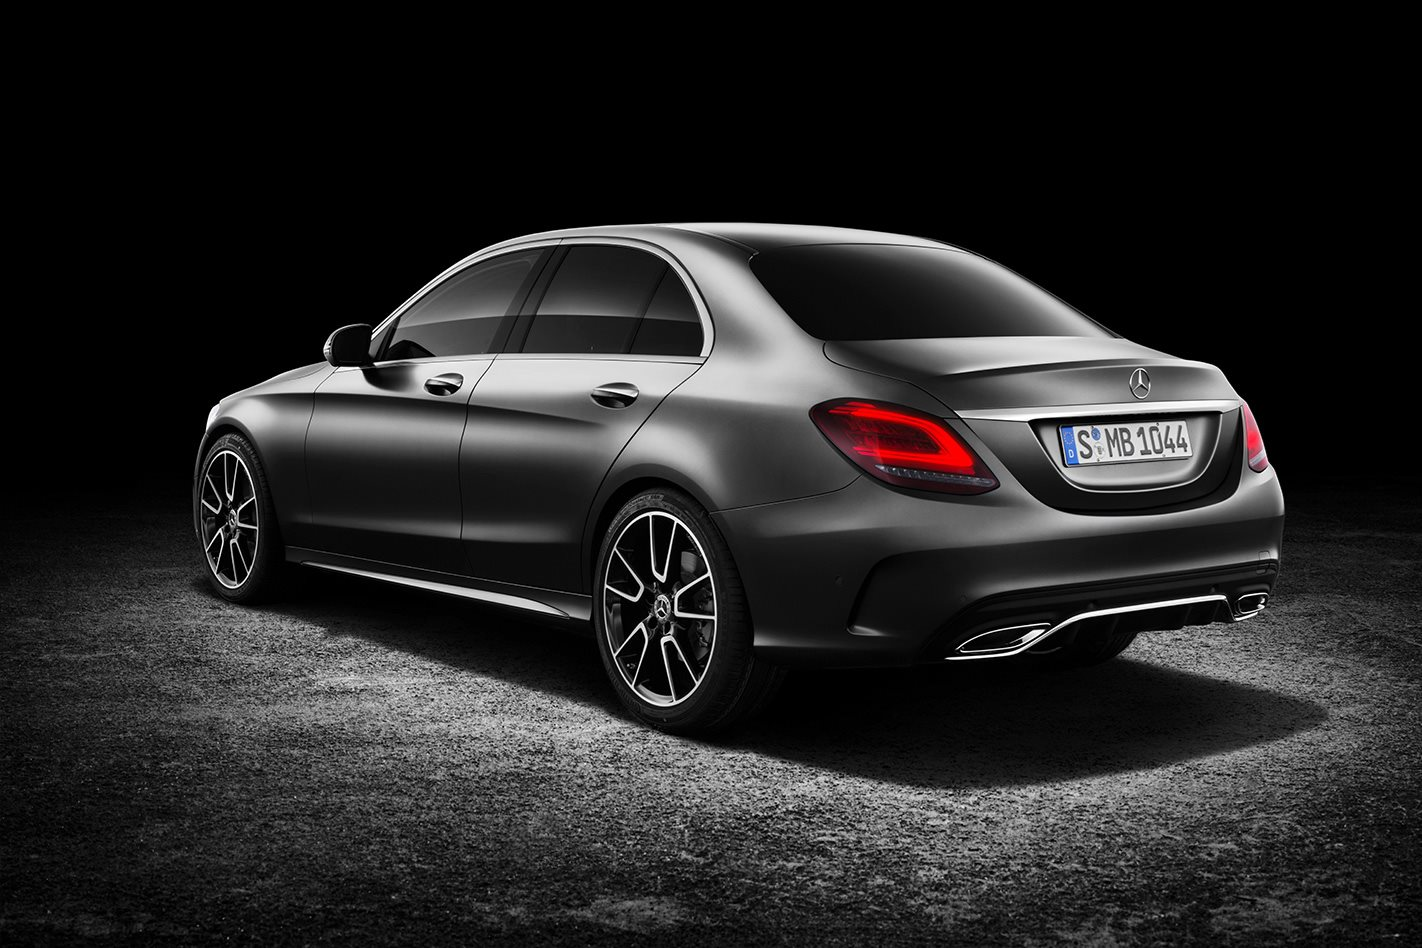 Facelifted 2018 mercedes benz c class revealed wheels for Mercedes benz latest technology